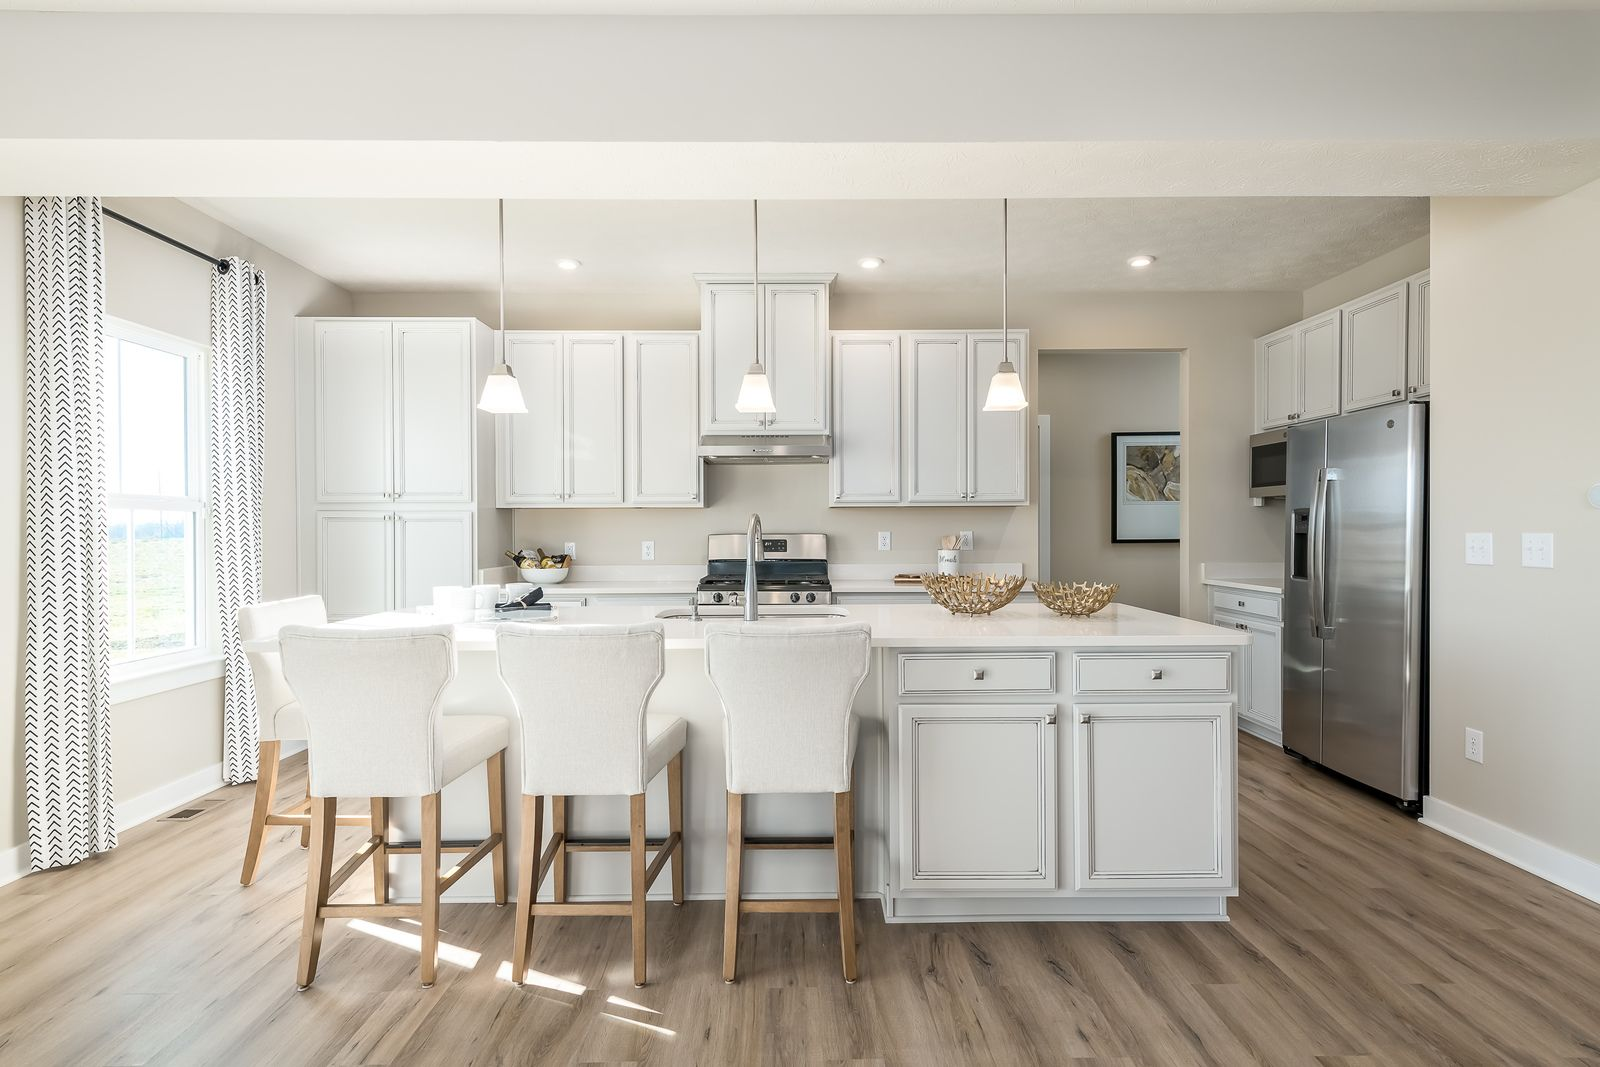 Kitchen featured in the Hudson By Ryan Homes in Charlotte, NC